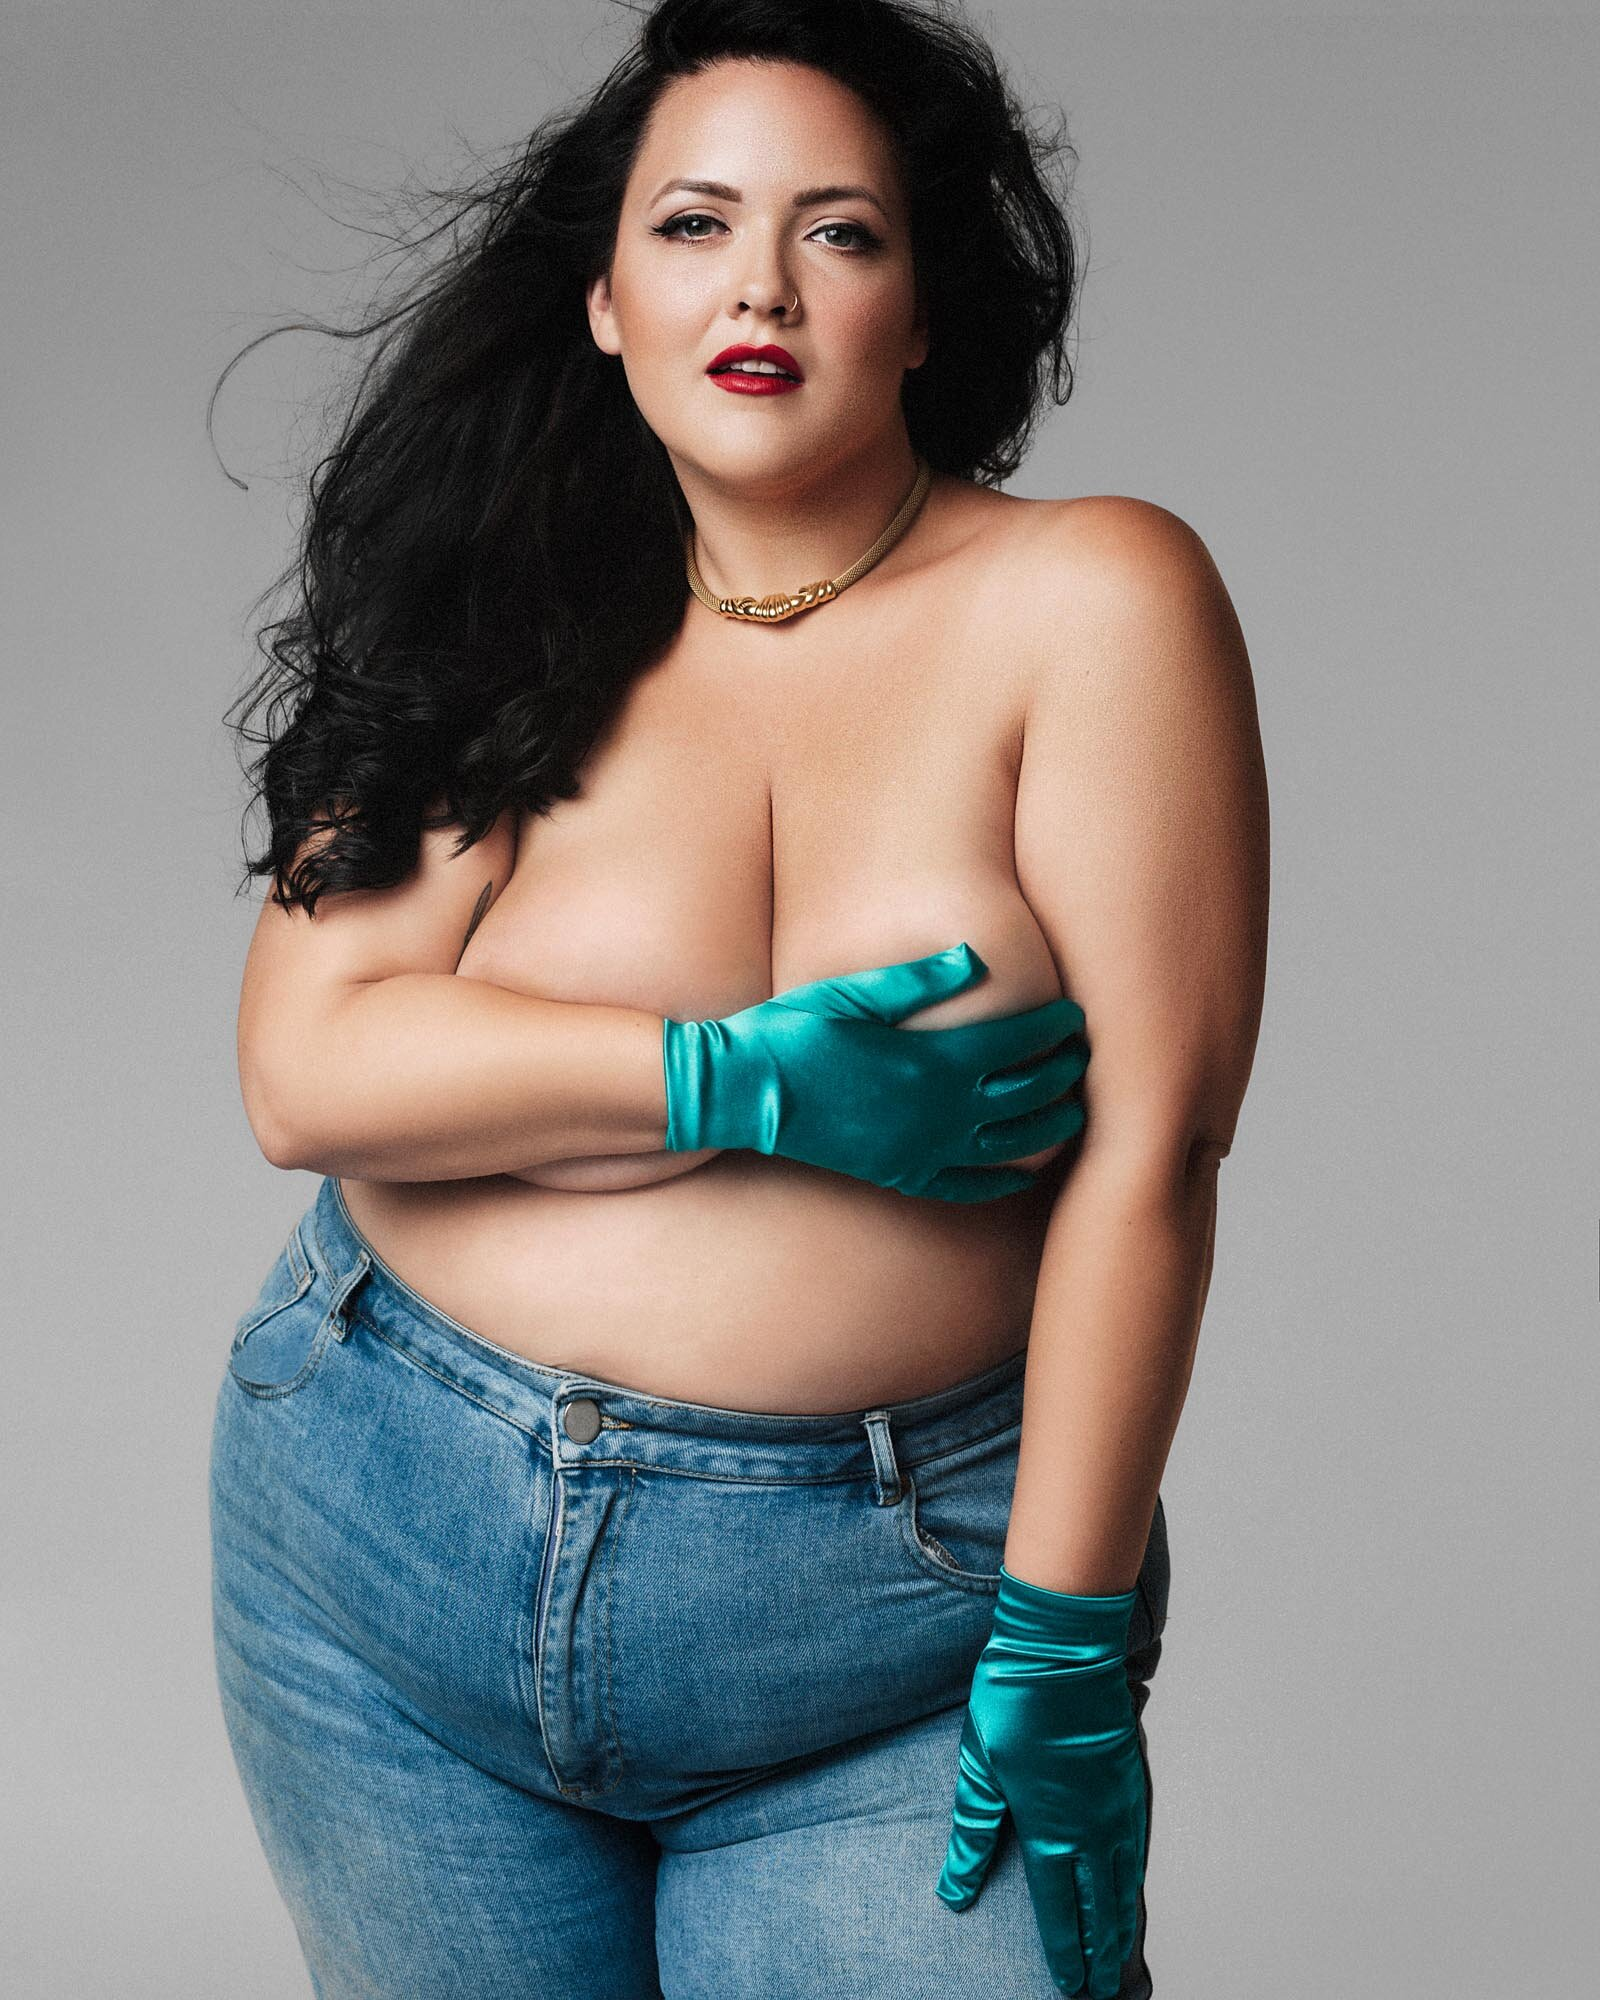 nyc-photographers-plus-size-models-test-10019.jpg